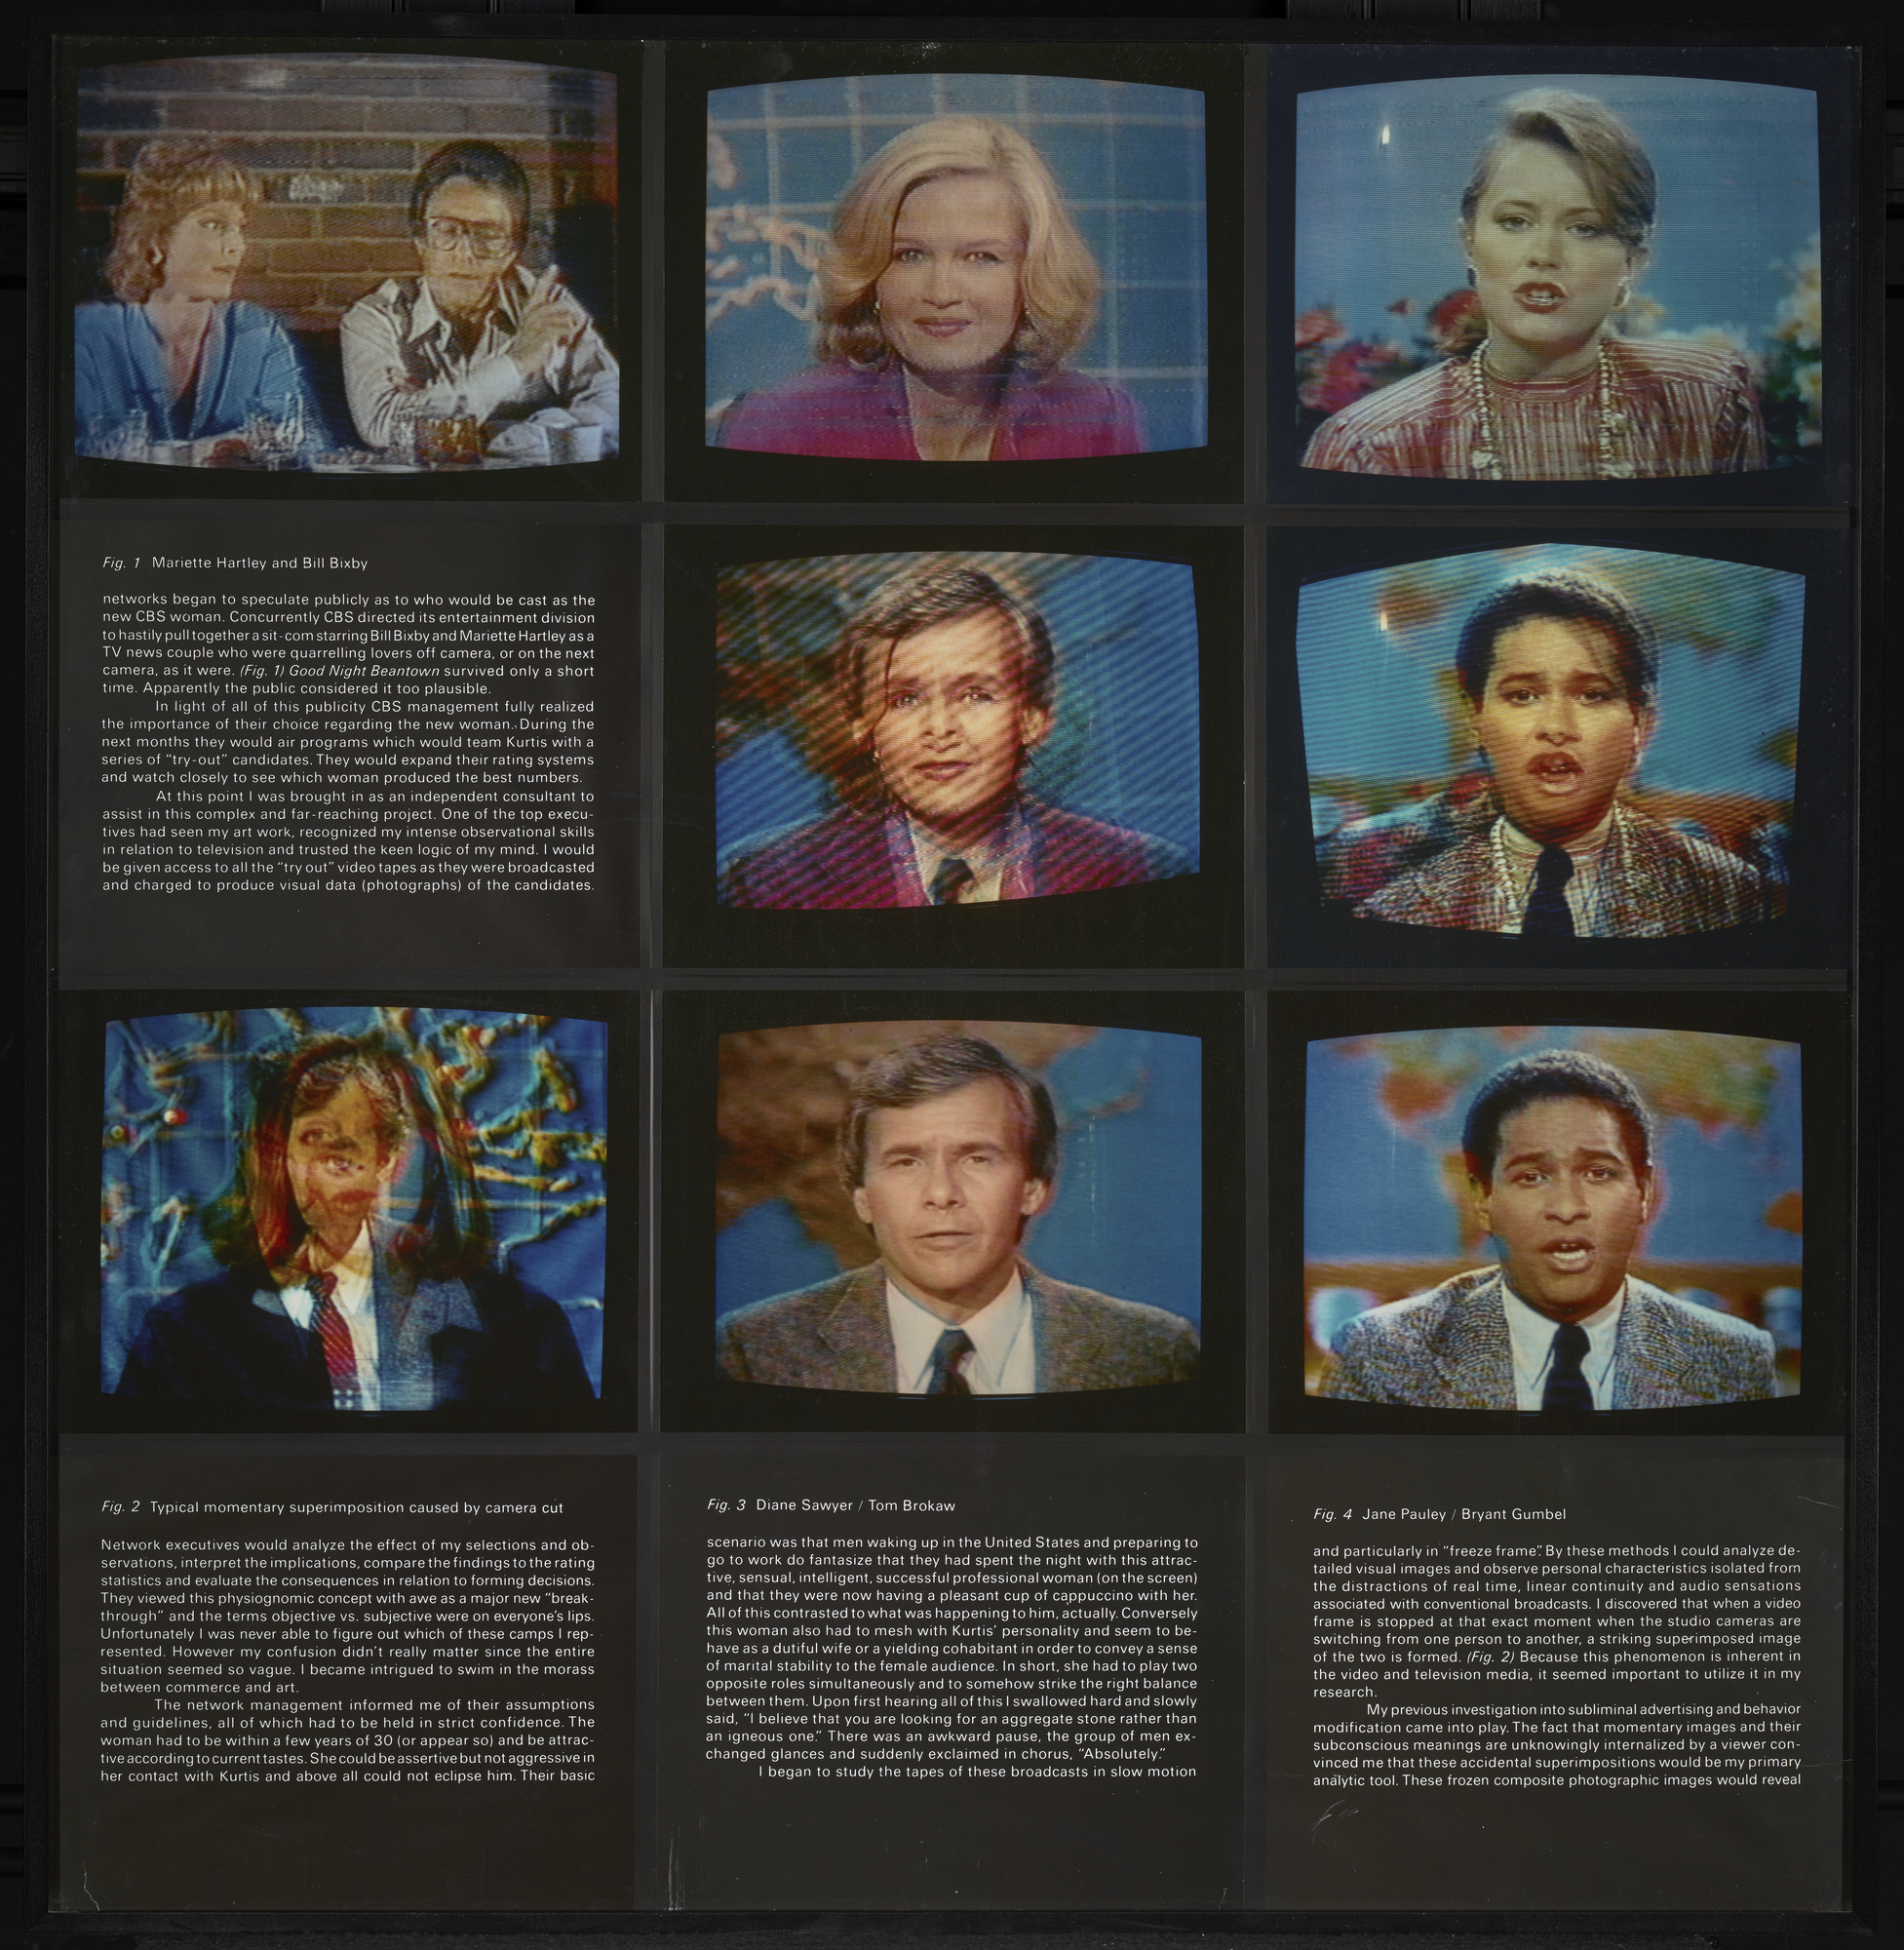 A Case Study in Finding an Appropriate TV Newswoman (A CBS Docudrama in Words and Pictures) (detail), 1984